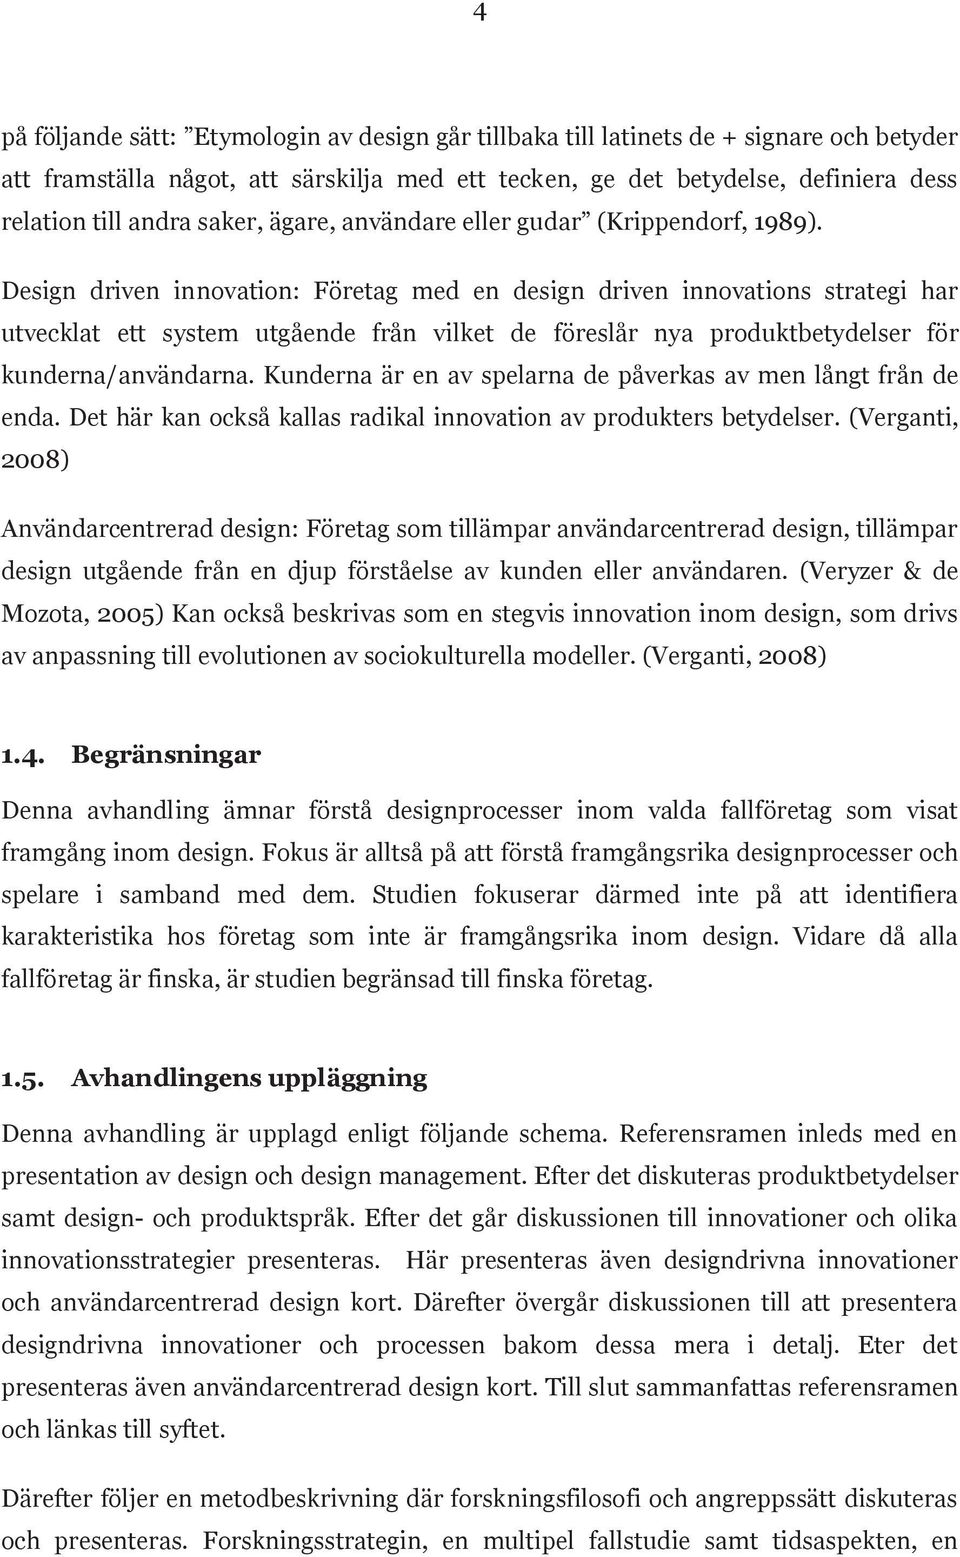 Design driven innovation: Företag med en design driven innovations strategi har utvecklat ett system utgående från vilket de föreslår nya produktbetydelser för kunderna/användarna.